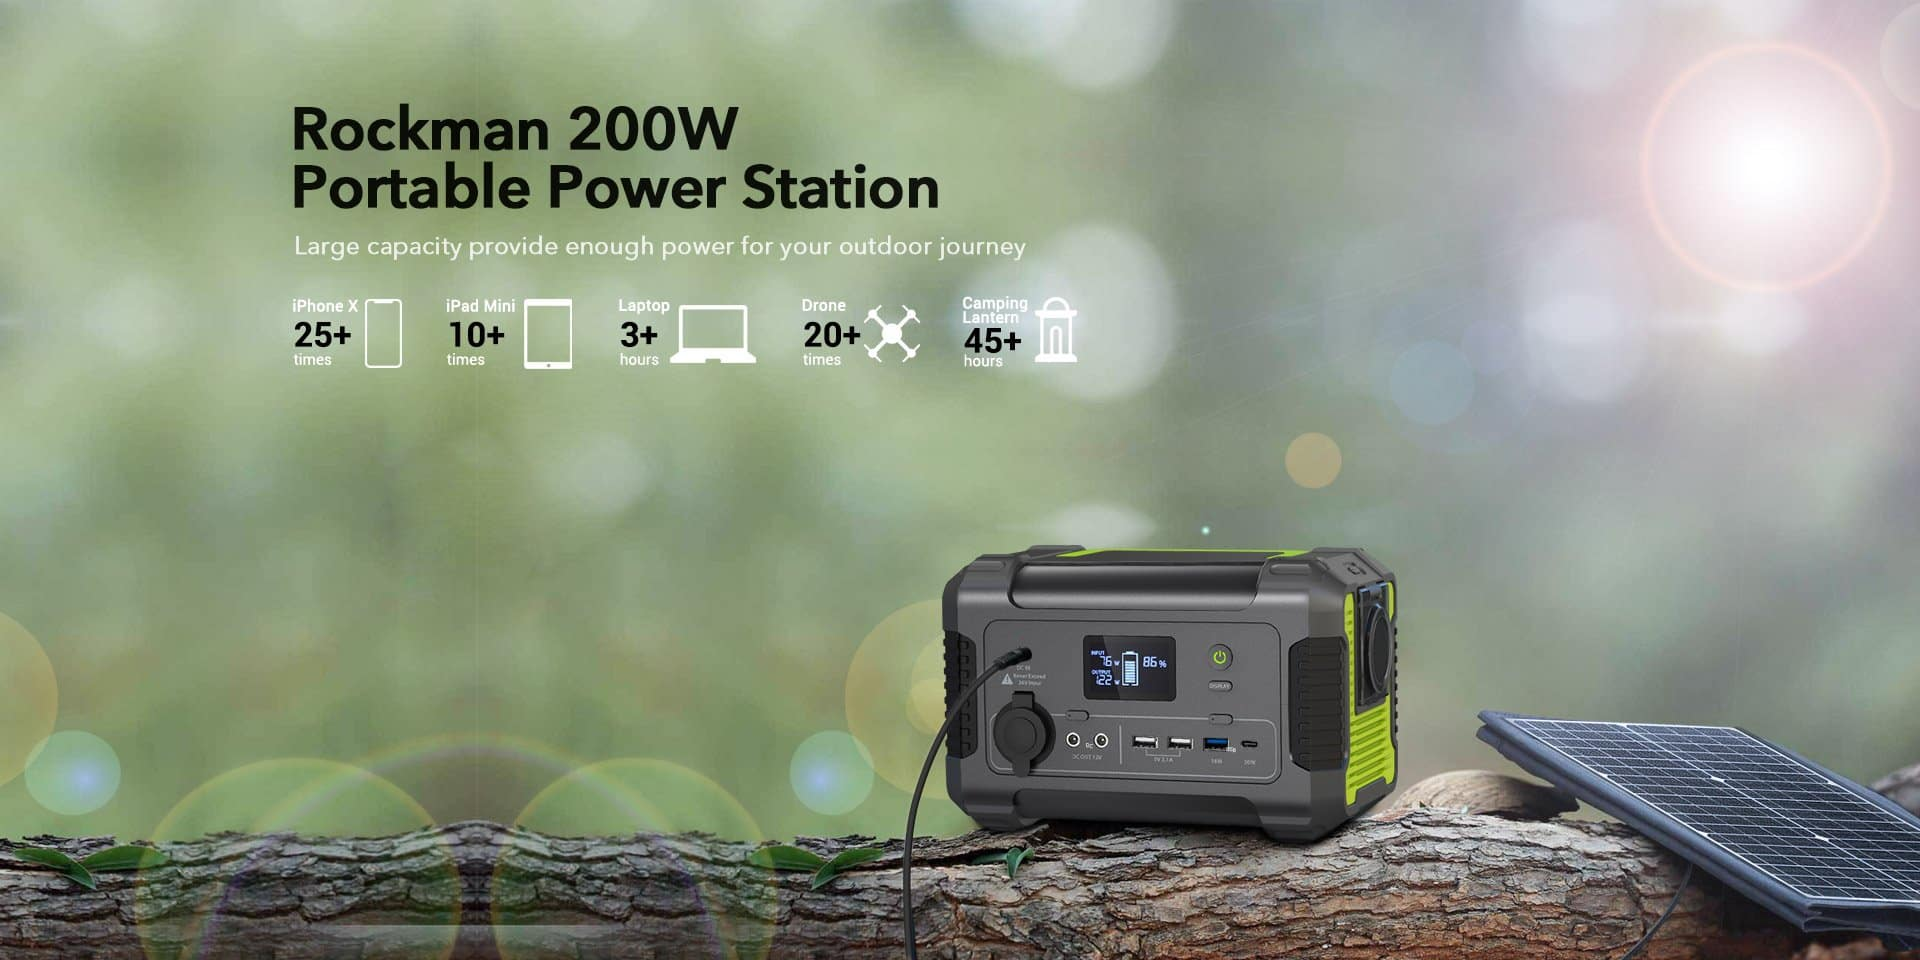 Rockman 200W Portable Power Station - $139 delivered after coupon code: SAVE40